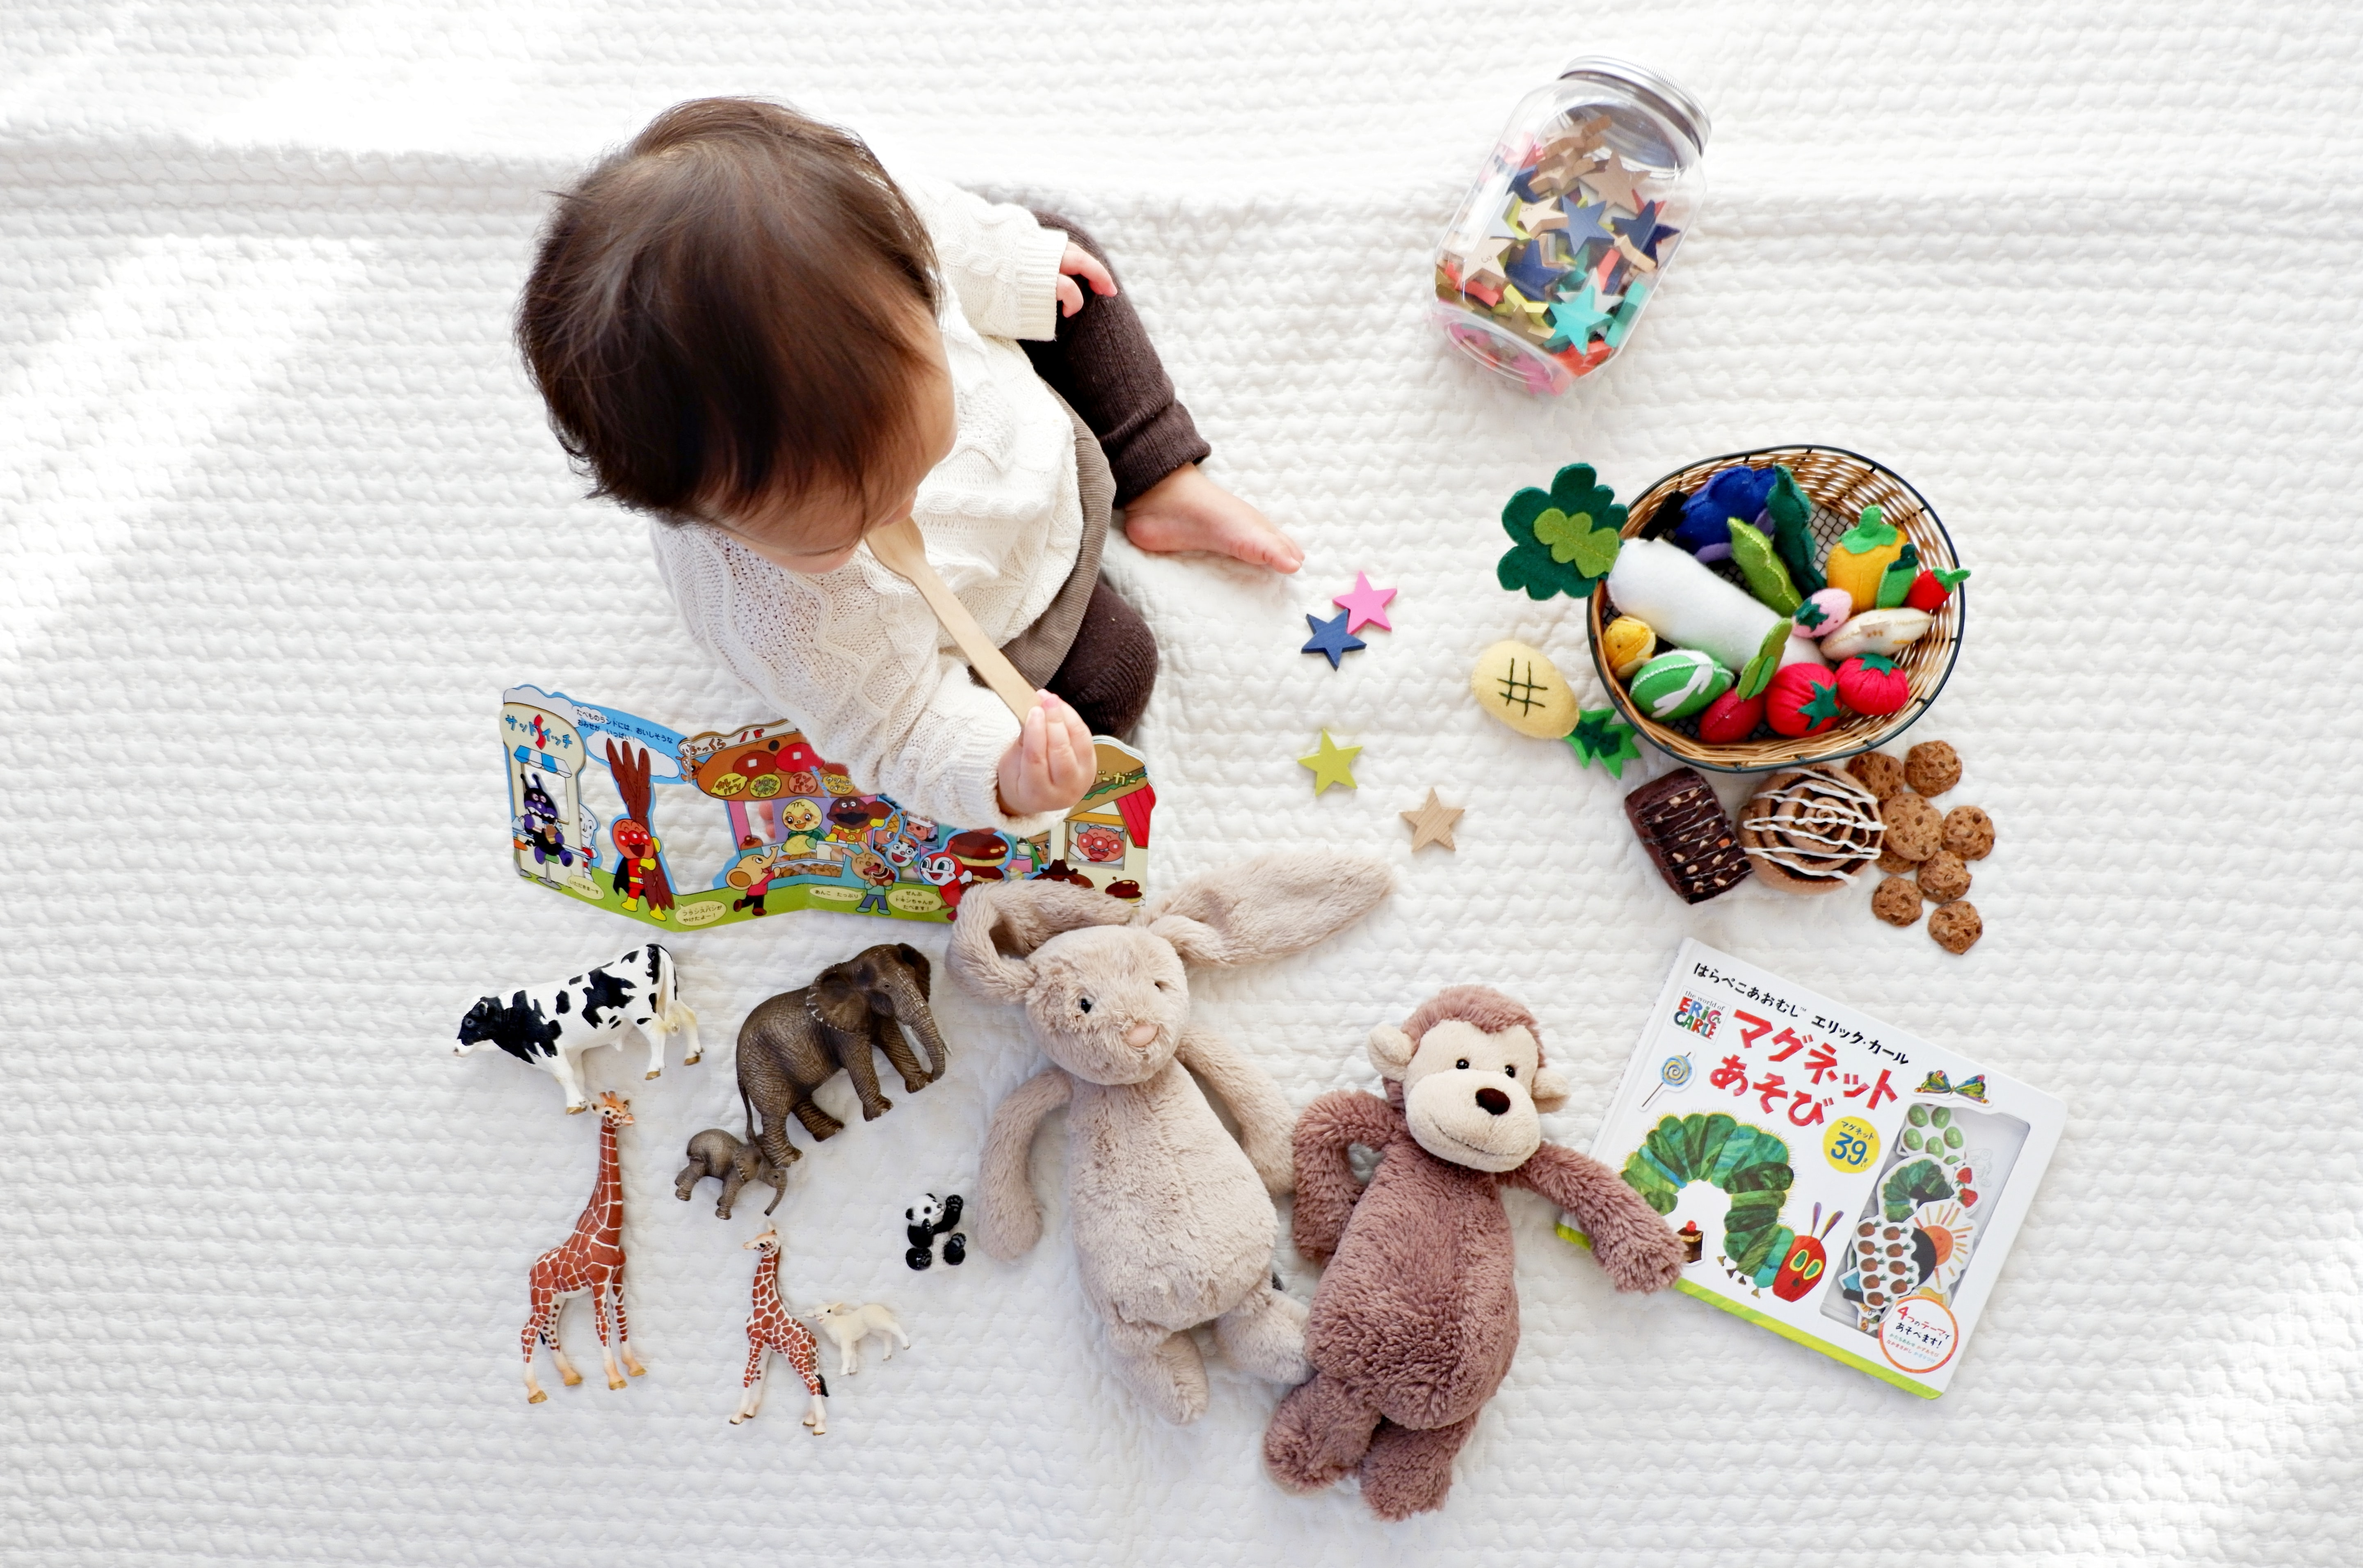 We propose 10 Montessori activities for children at home, which combine the basic postulates and activities that can be easily done at home, without the need for additional shopping.